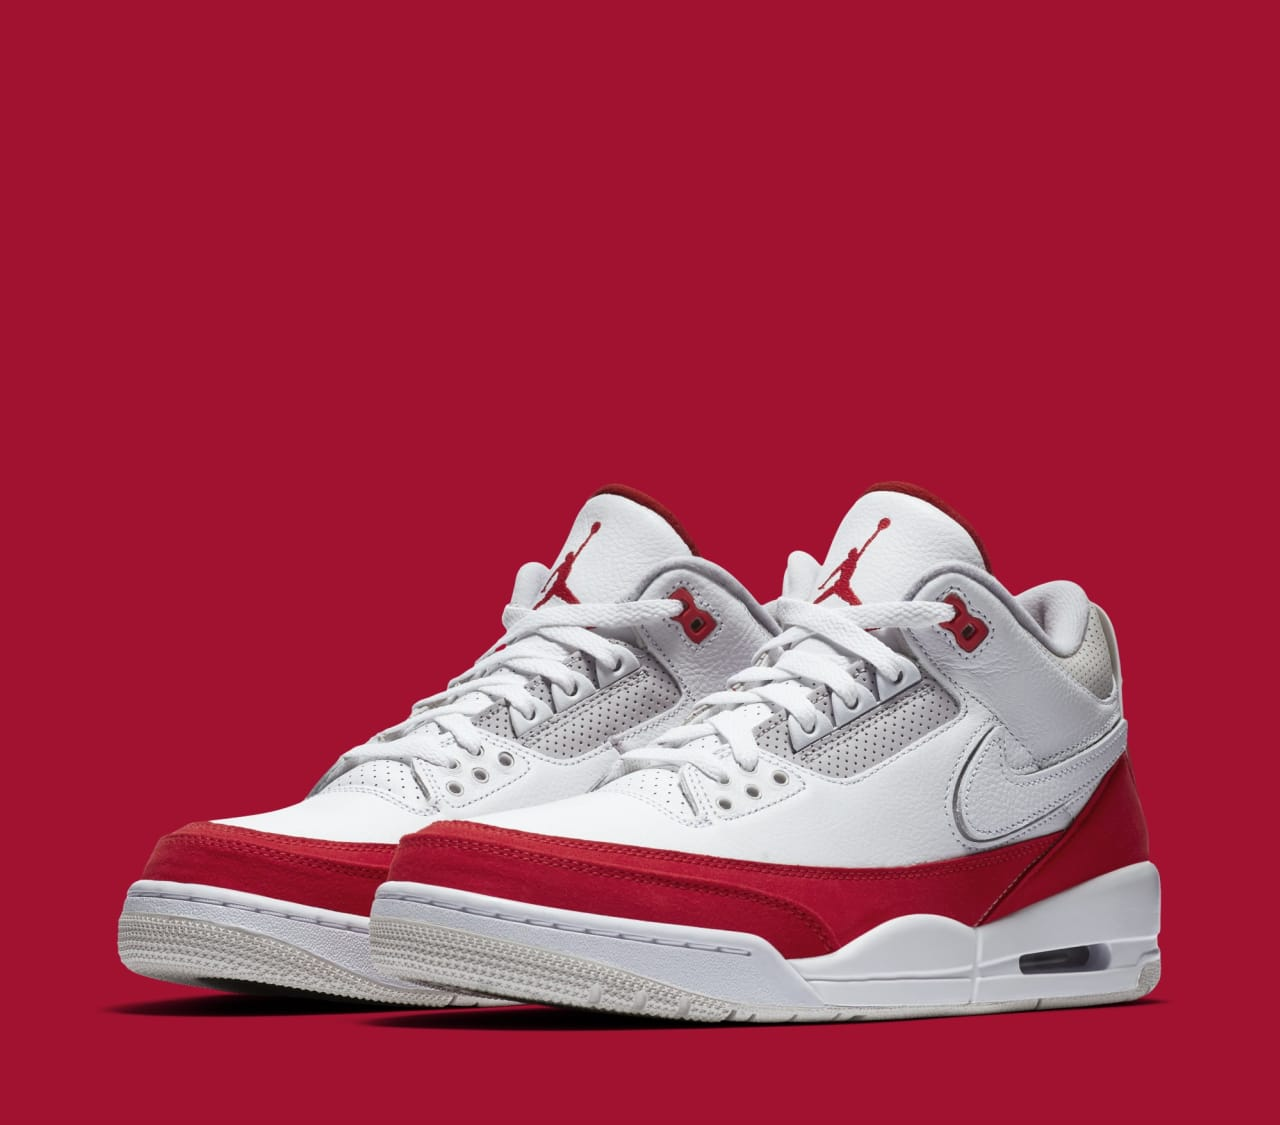 c3034d2541 Air Jordan 3 TH SP 'Katrina' White/University Red-Neutral Grey ...